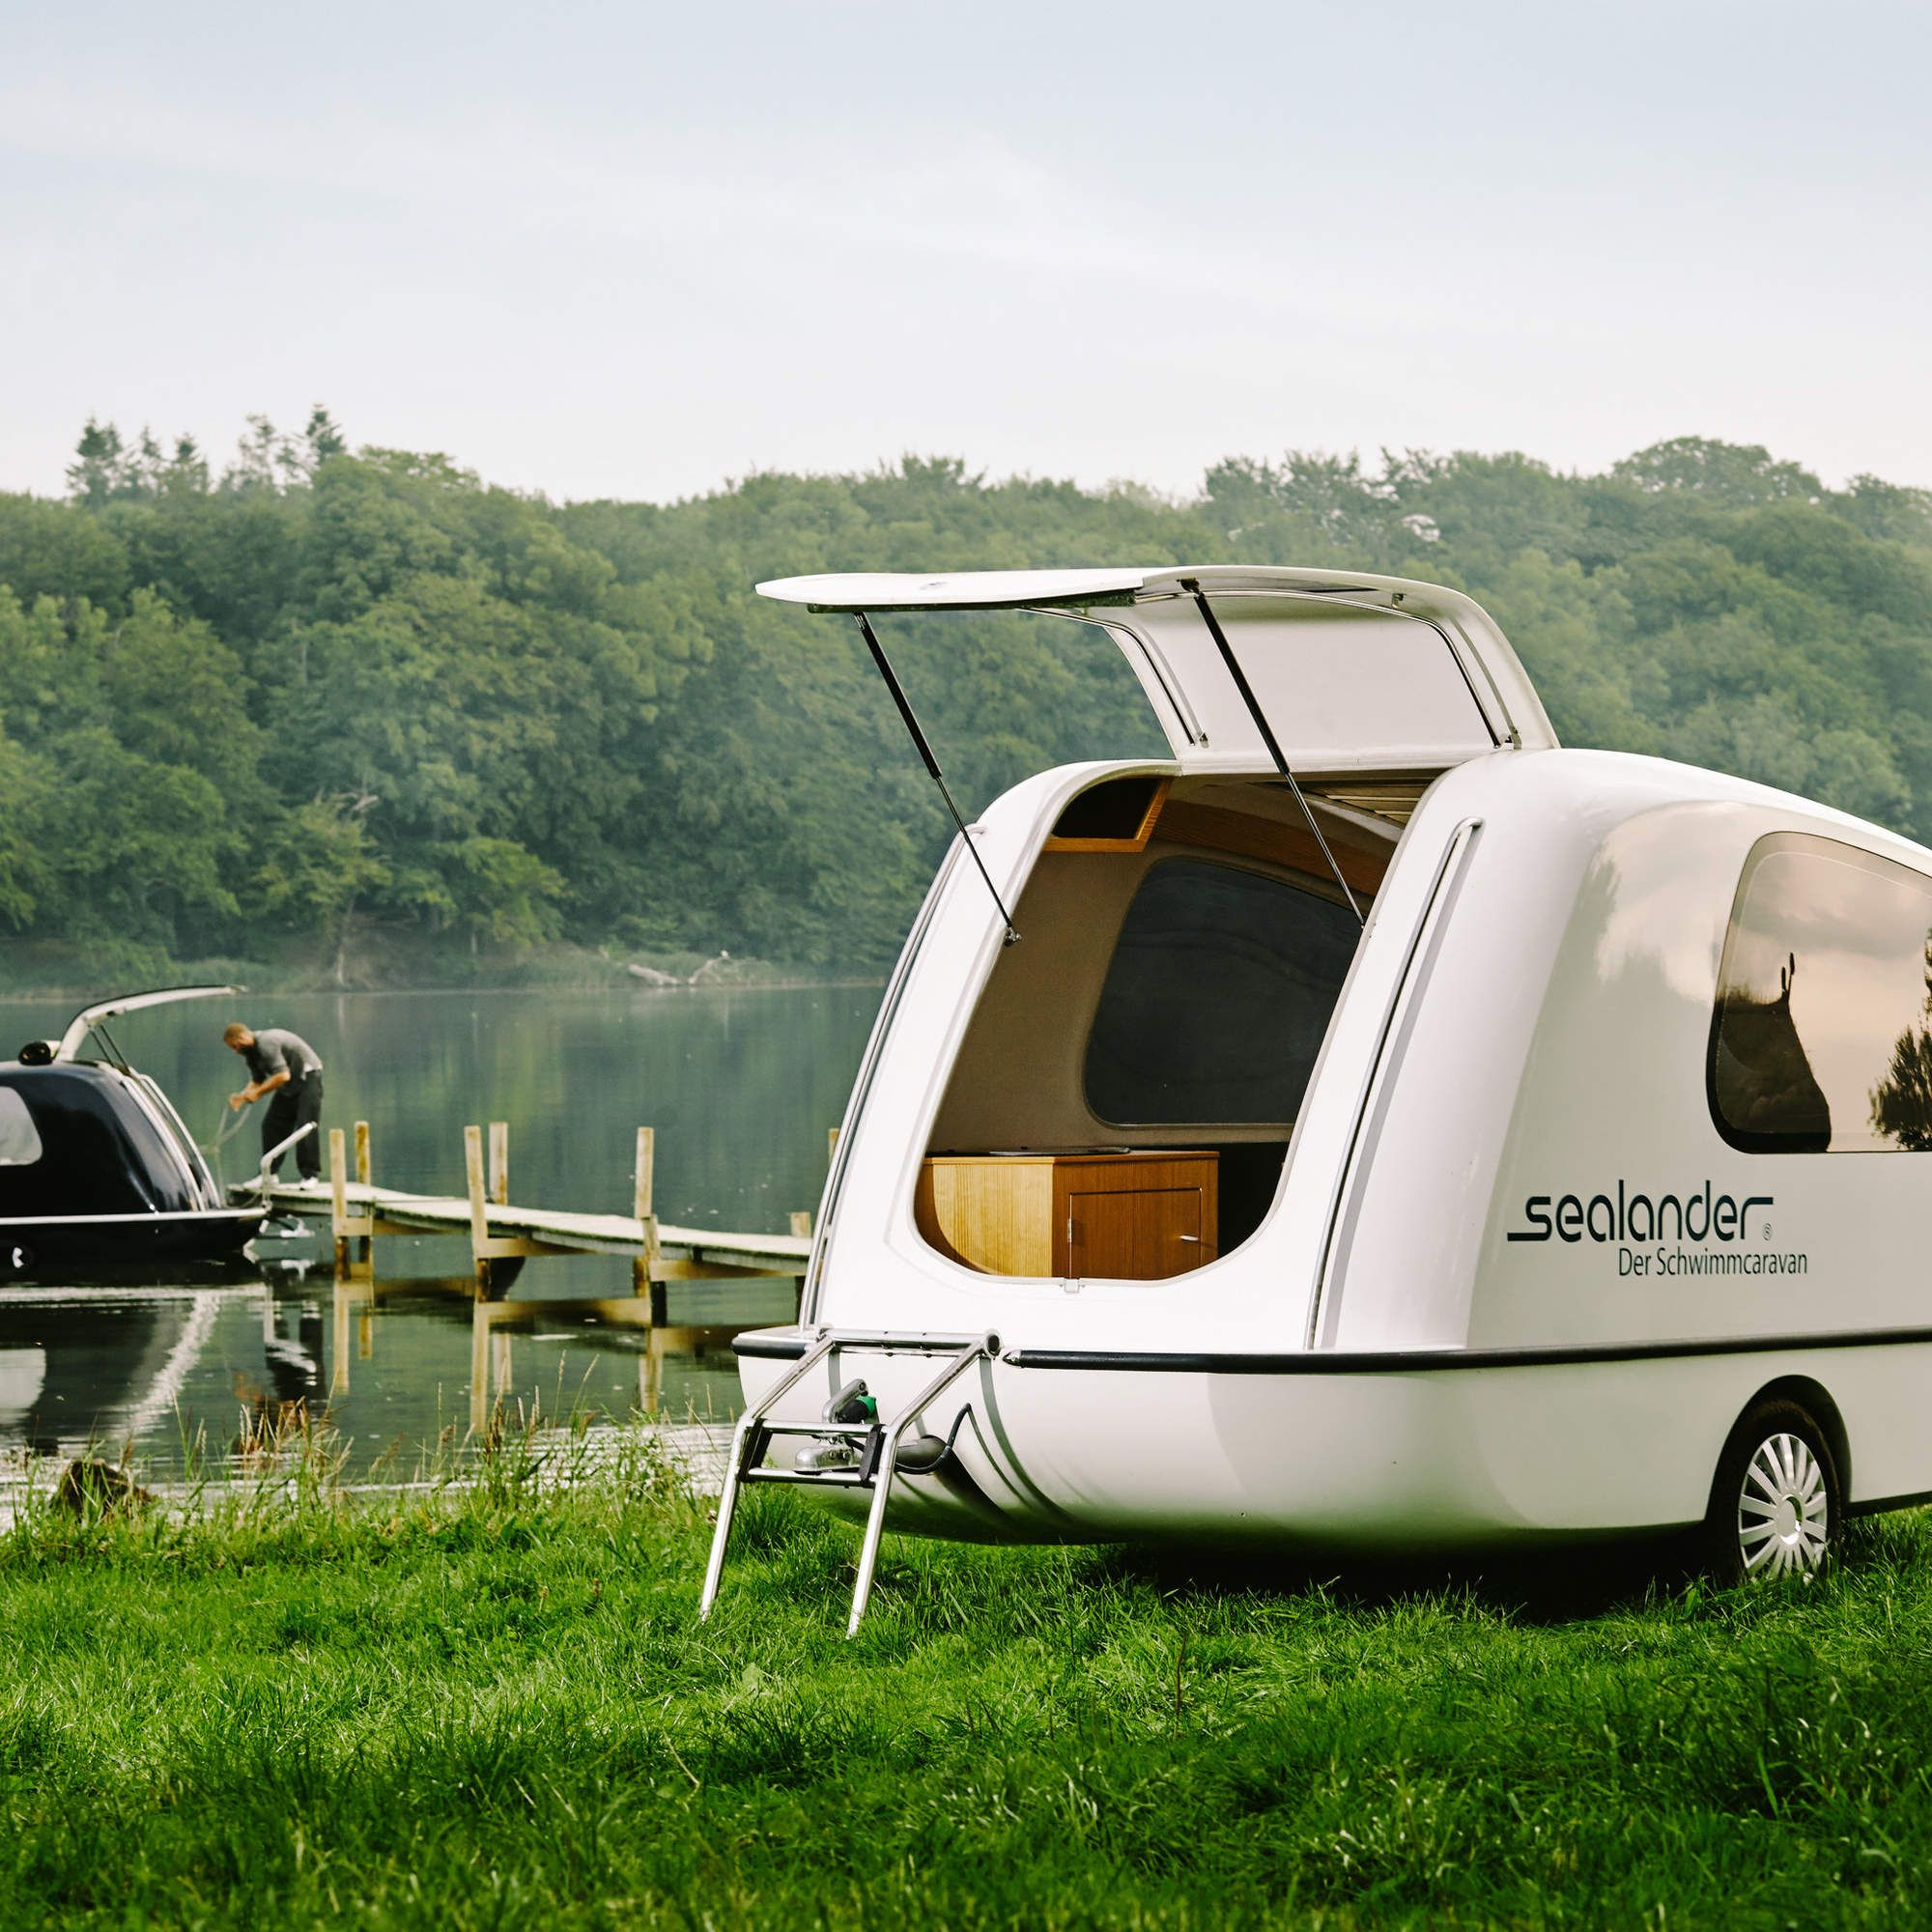 Sealander Amphibious Camping Trailer: The Amphibious Camper. This Could Work Out For Me